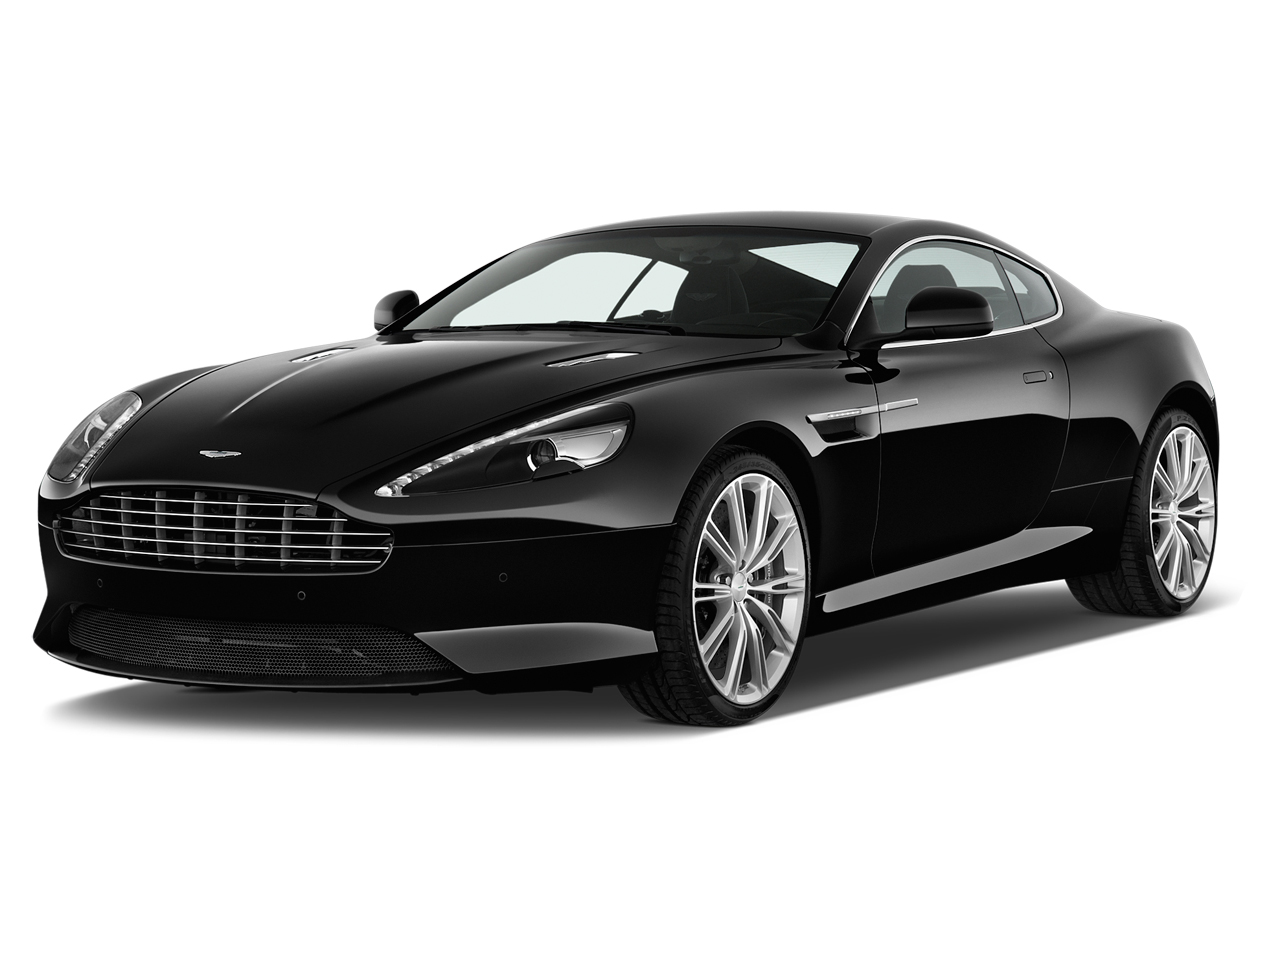 2018 Aston Martin DBS photo - 4